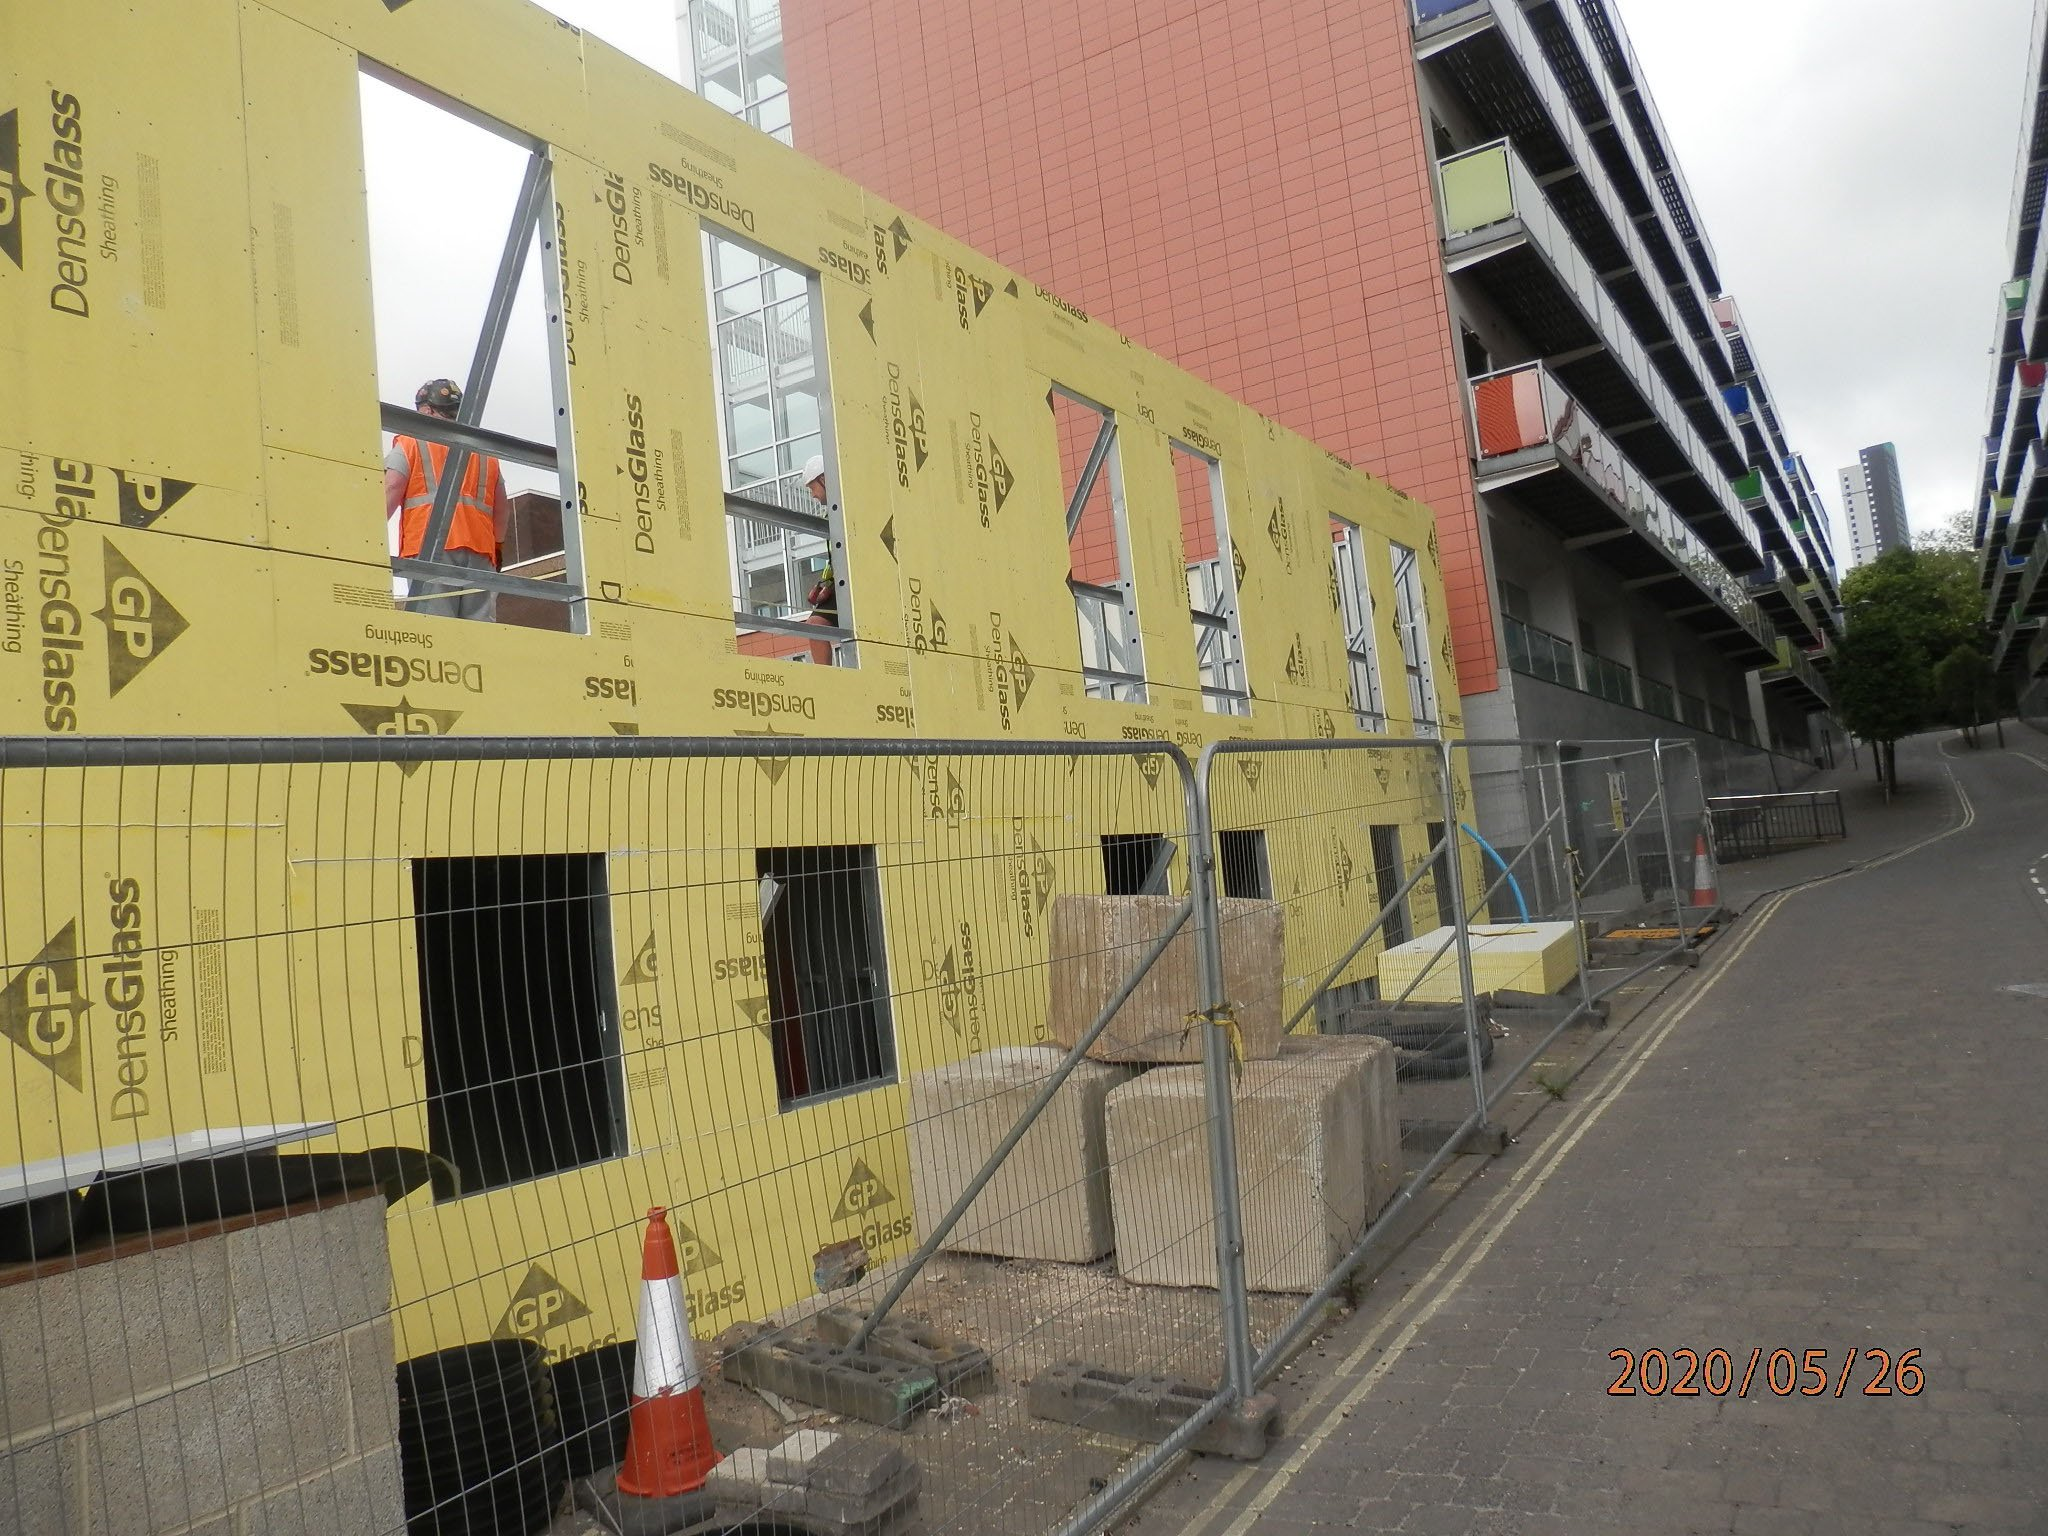 Frameclad uses smart offsite construction for 9-storey Concord Street development